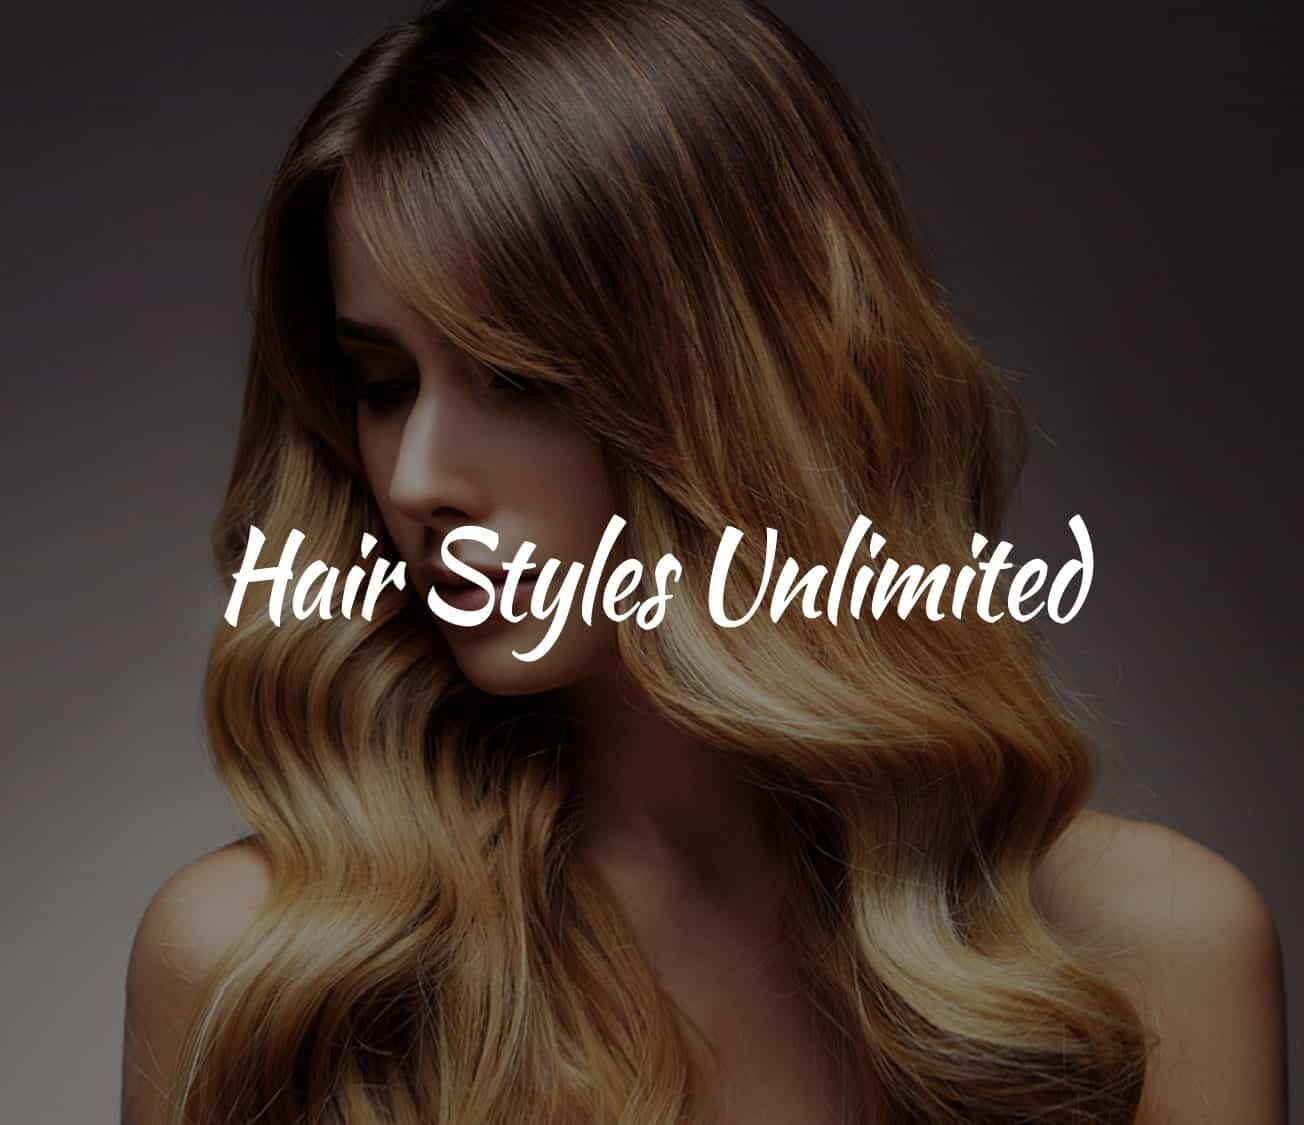 Hair Salon Web Design Specialists